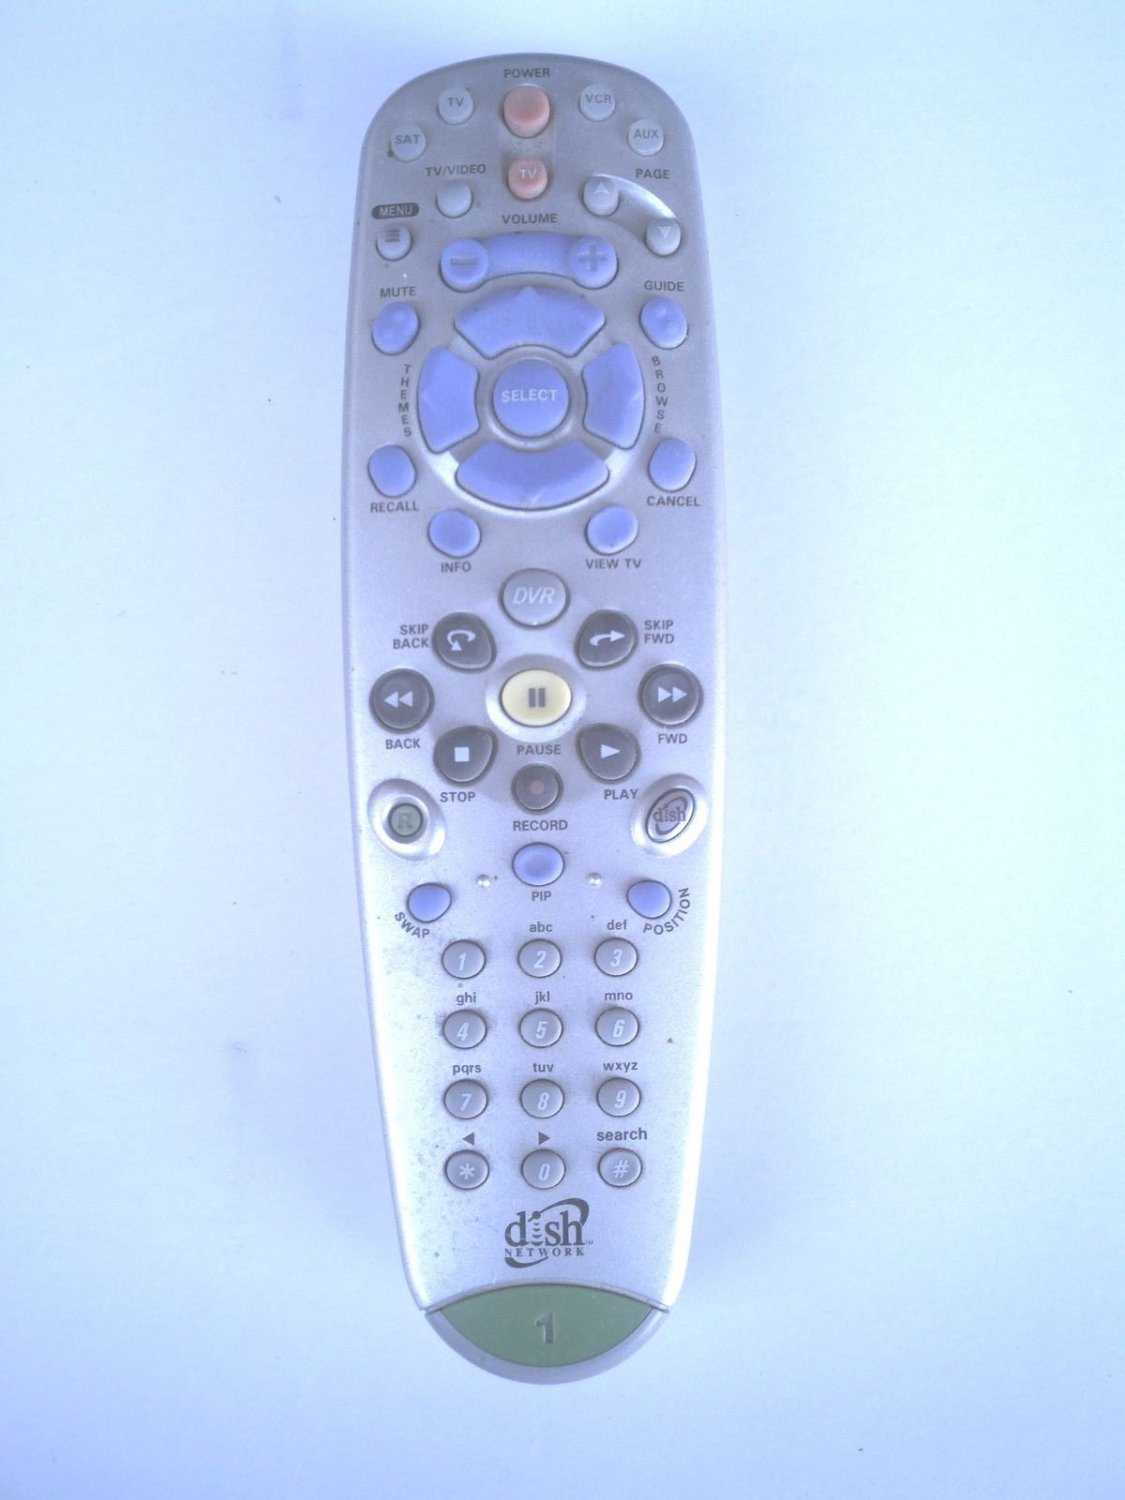 Remote Control Dish Network model 118575 IR 5.0 TV1 DVR 322 522 625 942 receiver